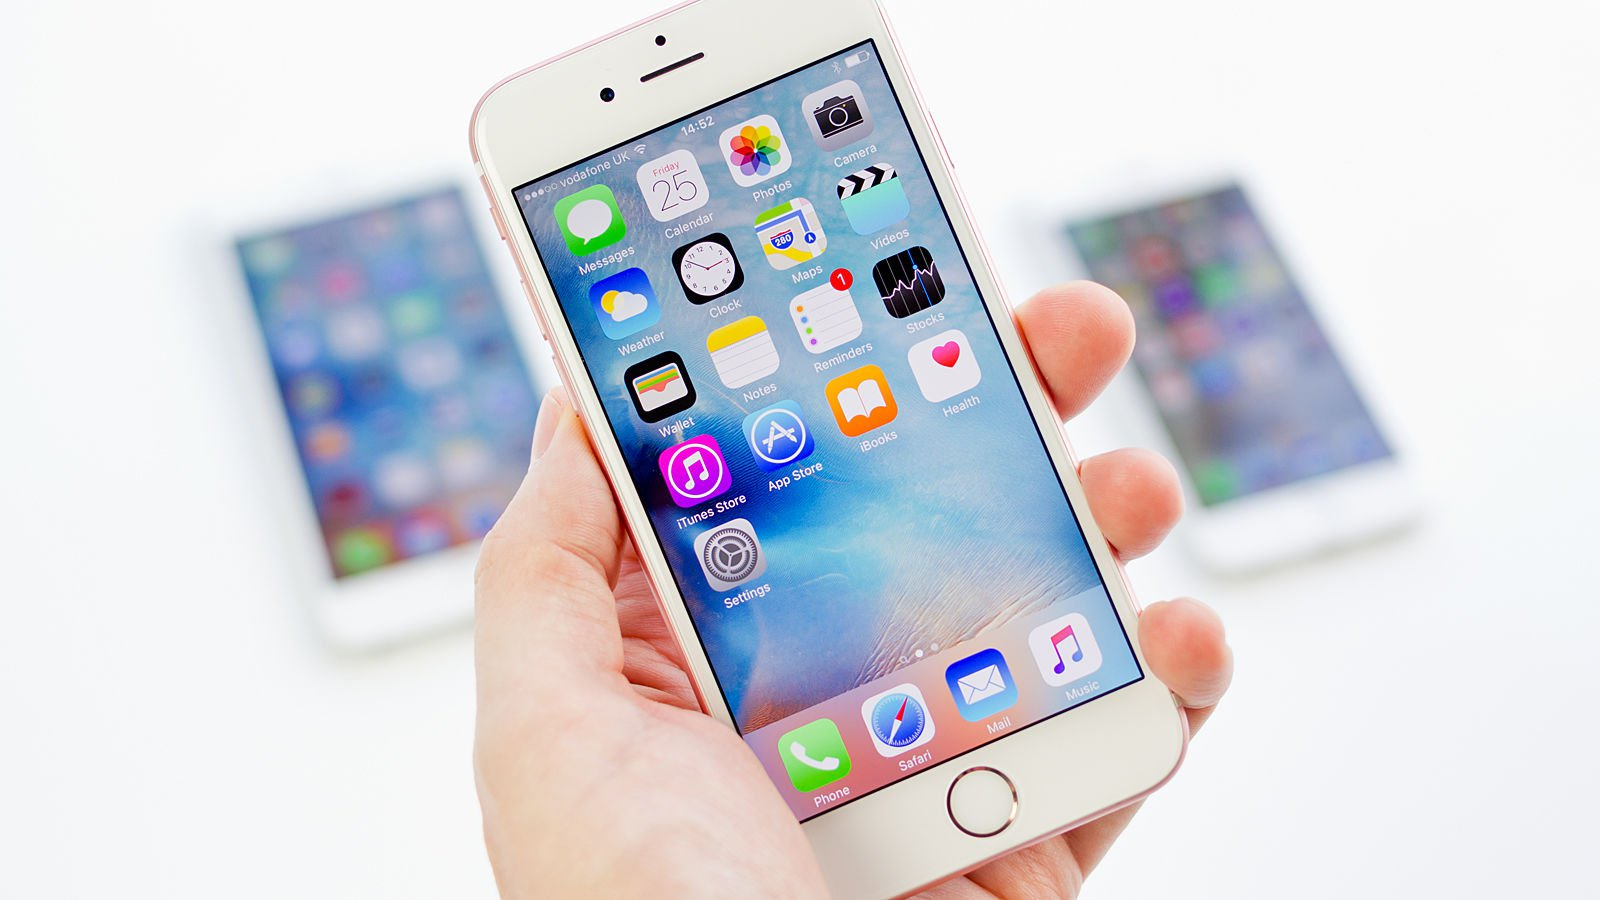 IPhone 7: What to expect from Apple's new phone in 2016